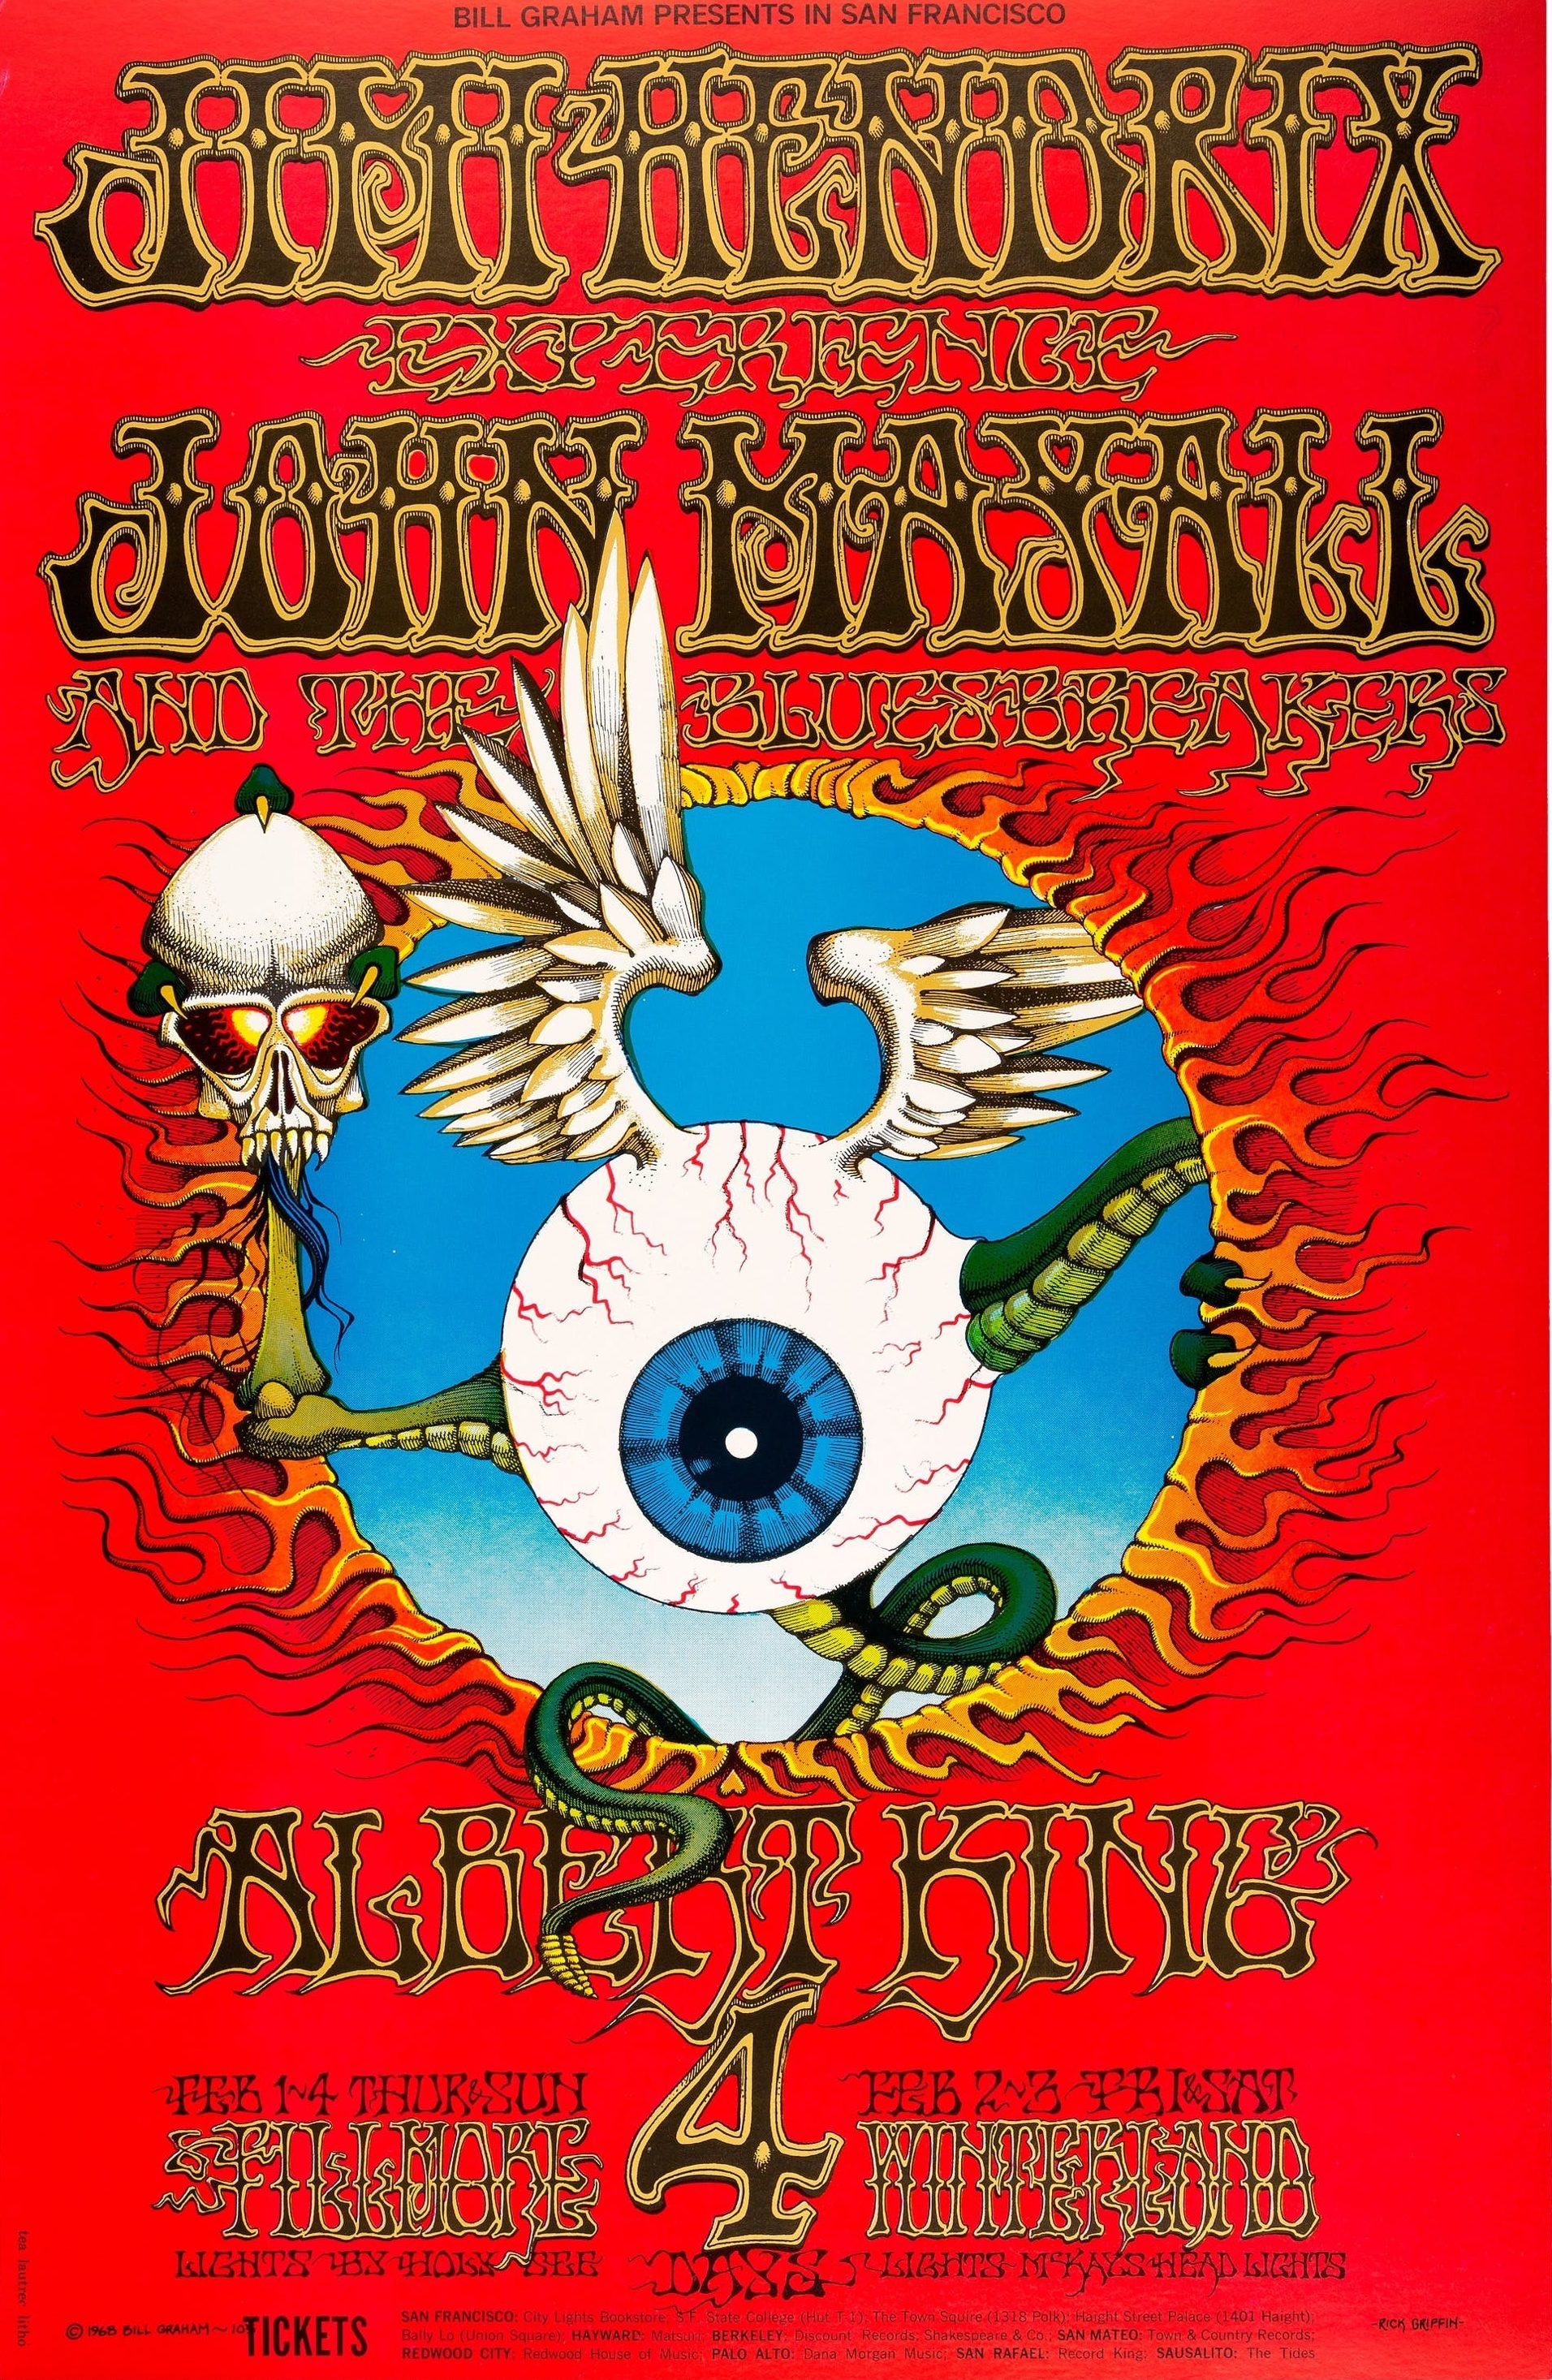 Jimi Hendrix Experience Eyeball poster by Rick Griffin